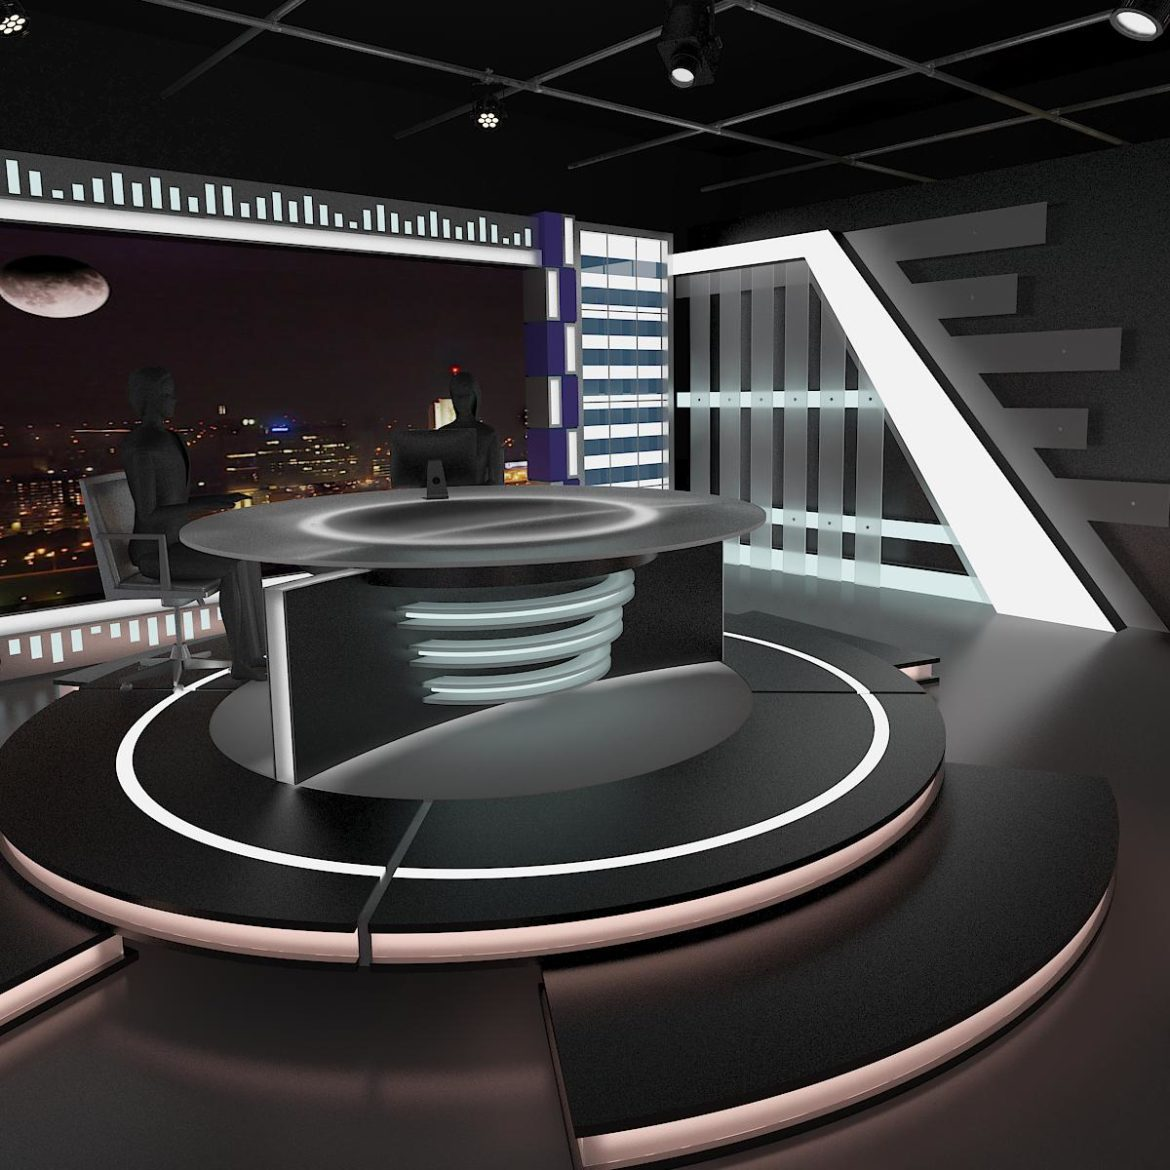 virtual tv studio news set 6 3d model 3ds c4d dxf fbx max obj 305598